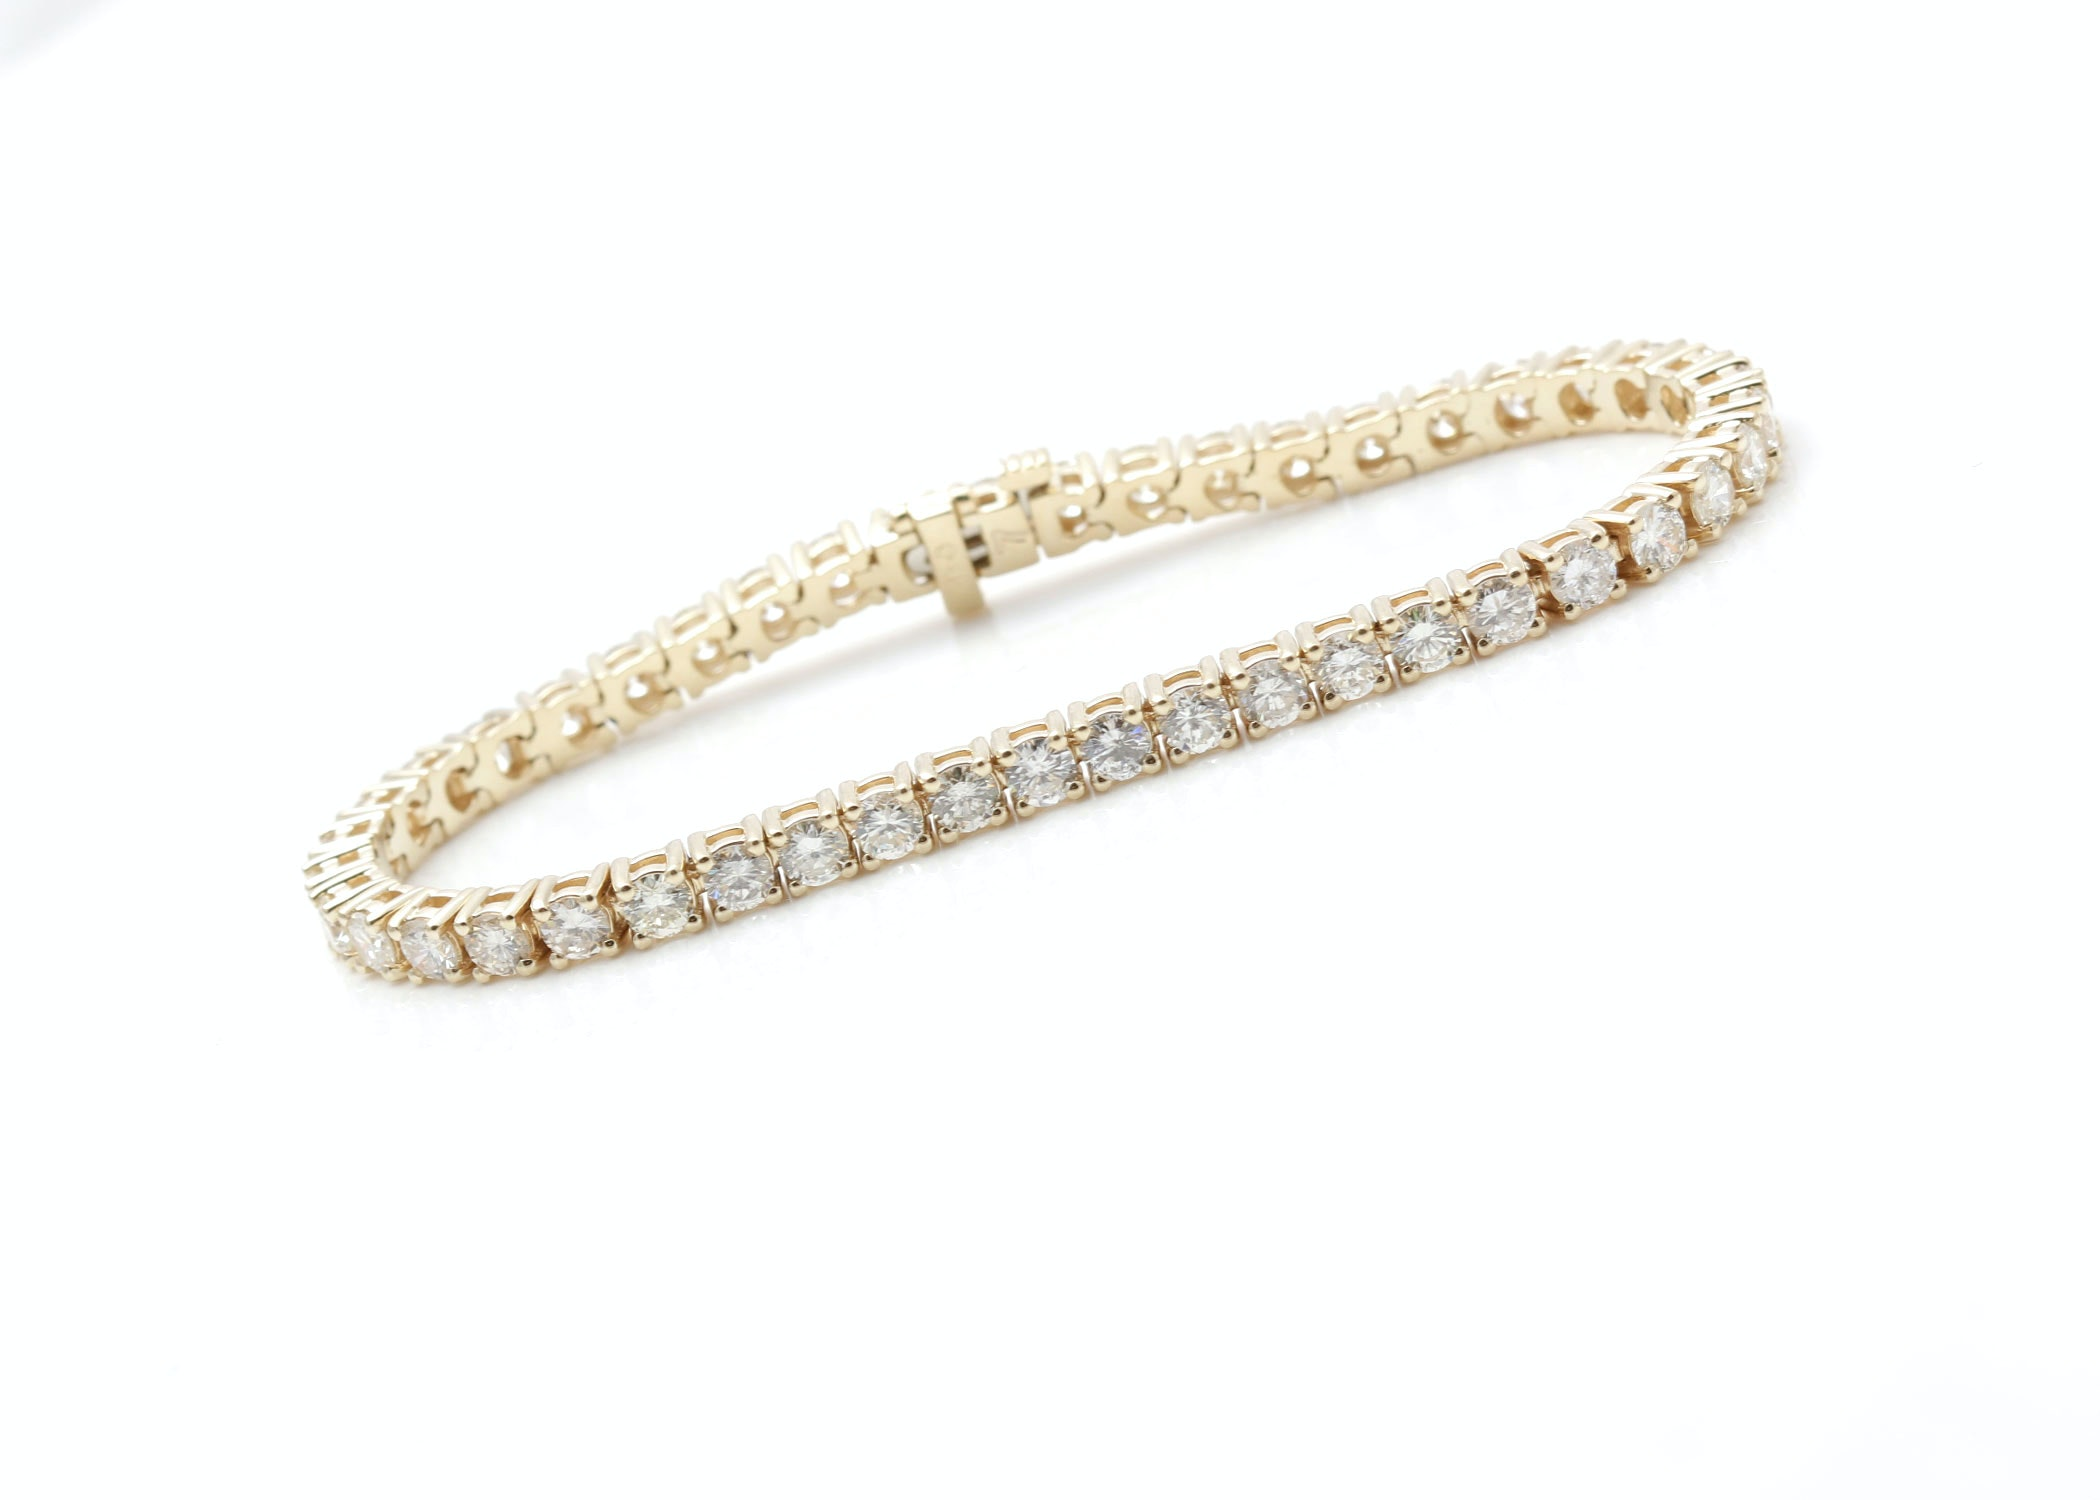 14K Yellow Gold 7.54 CTW Diamond Bracelet